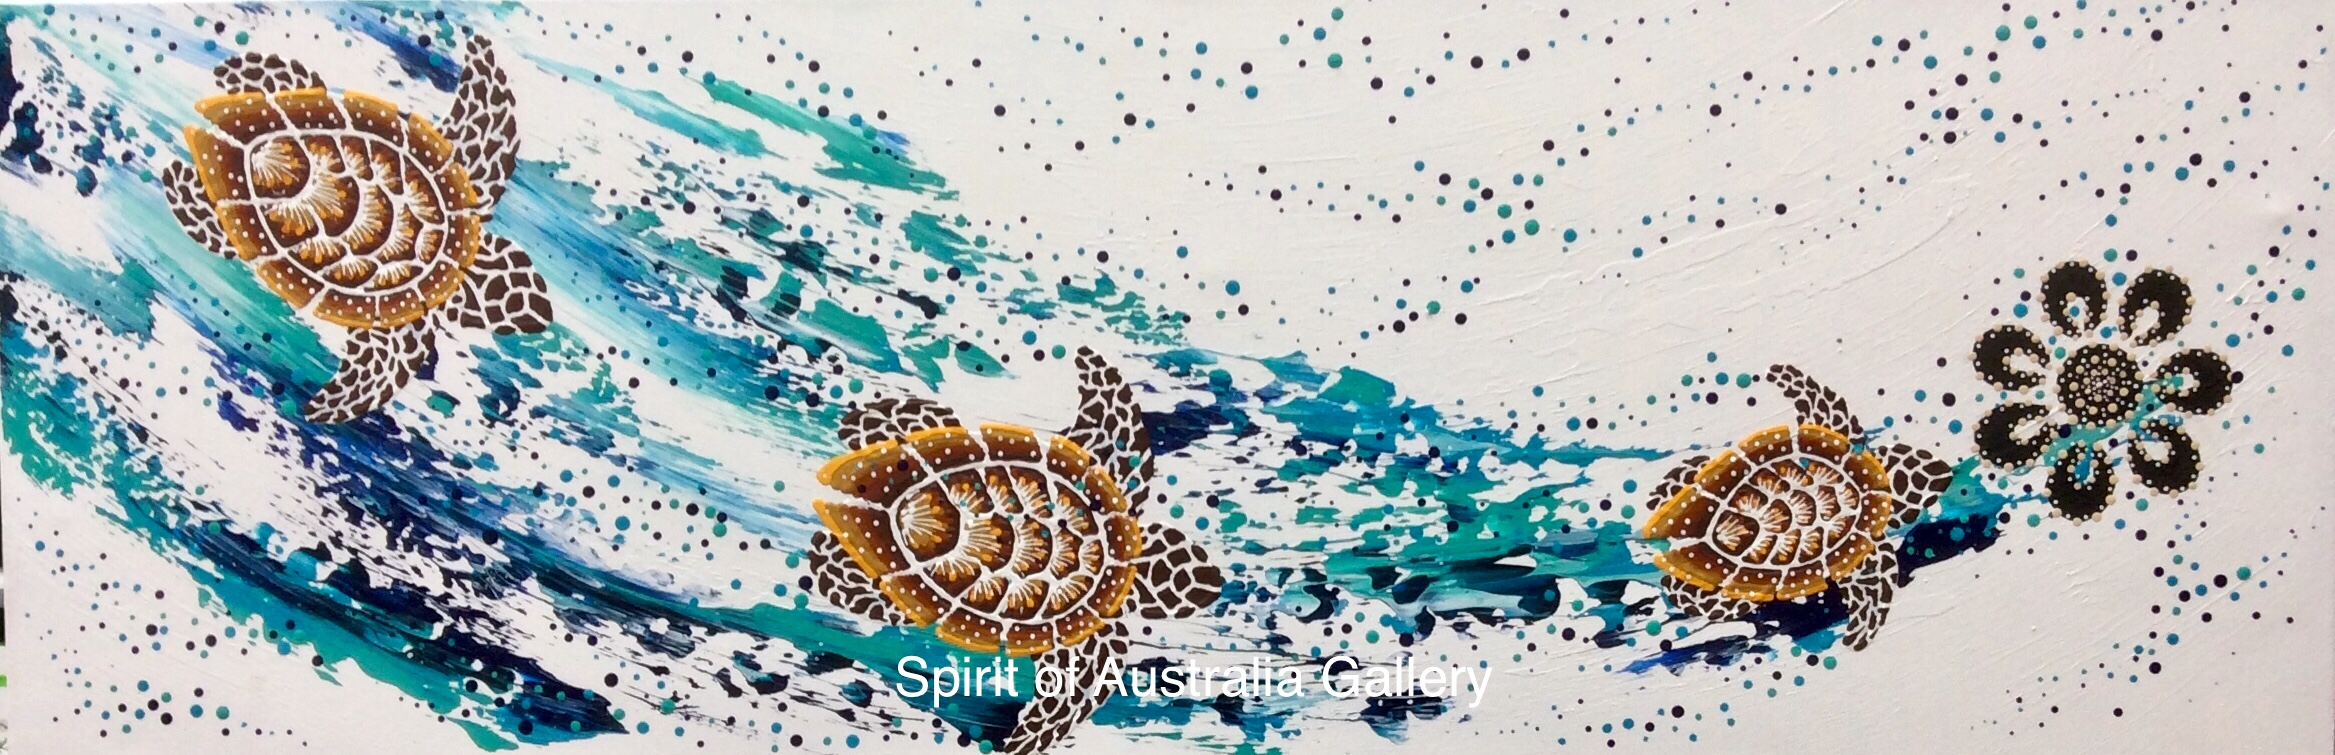 "Anthony Walker, ""Turtle increase song cycle"", 120x60cm"